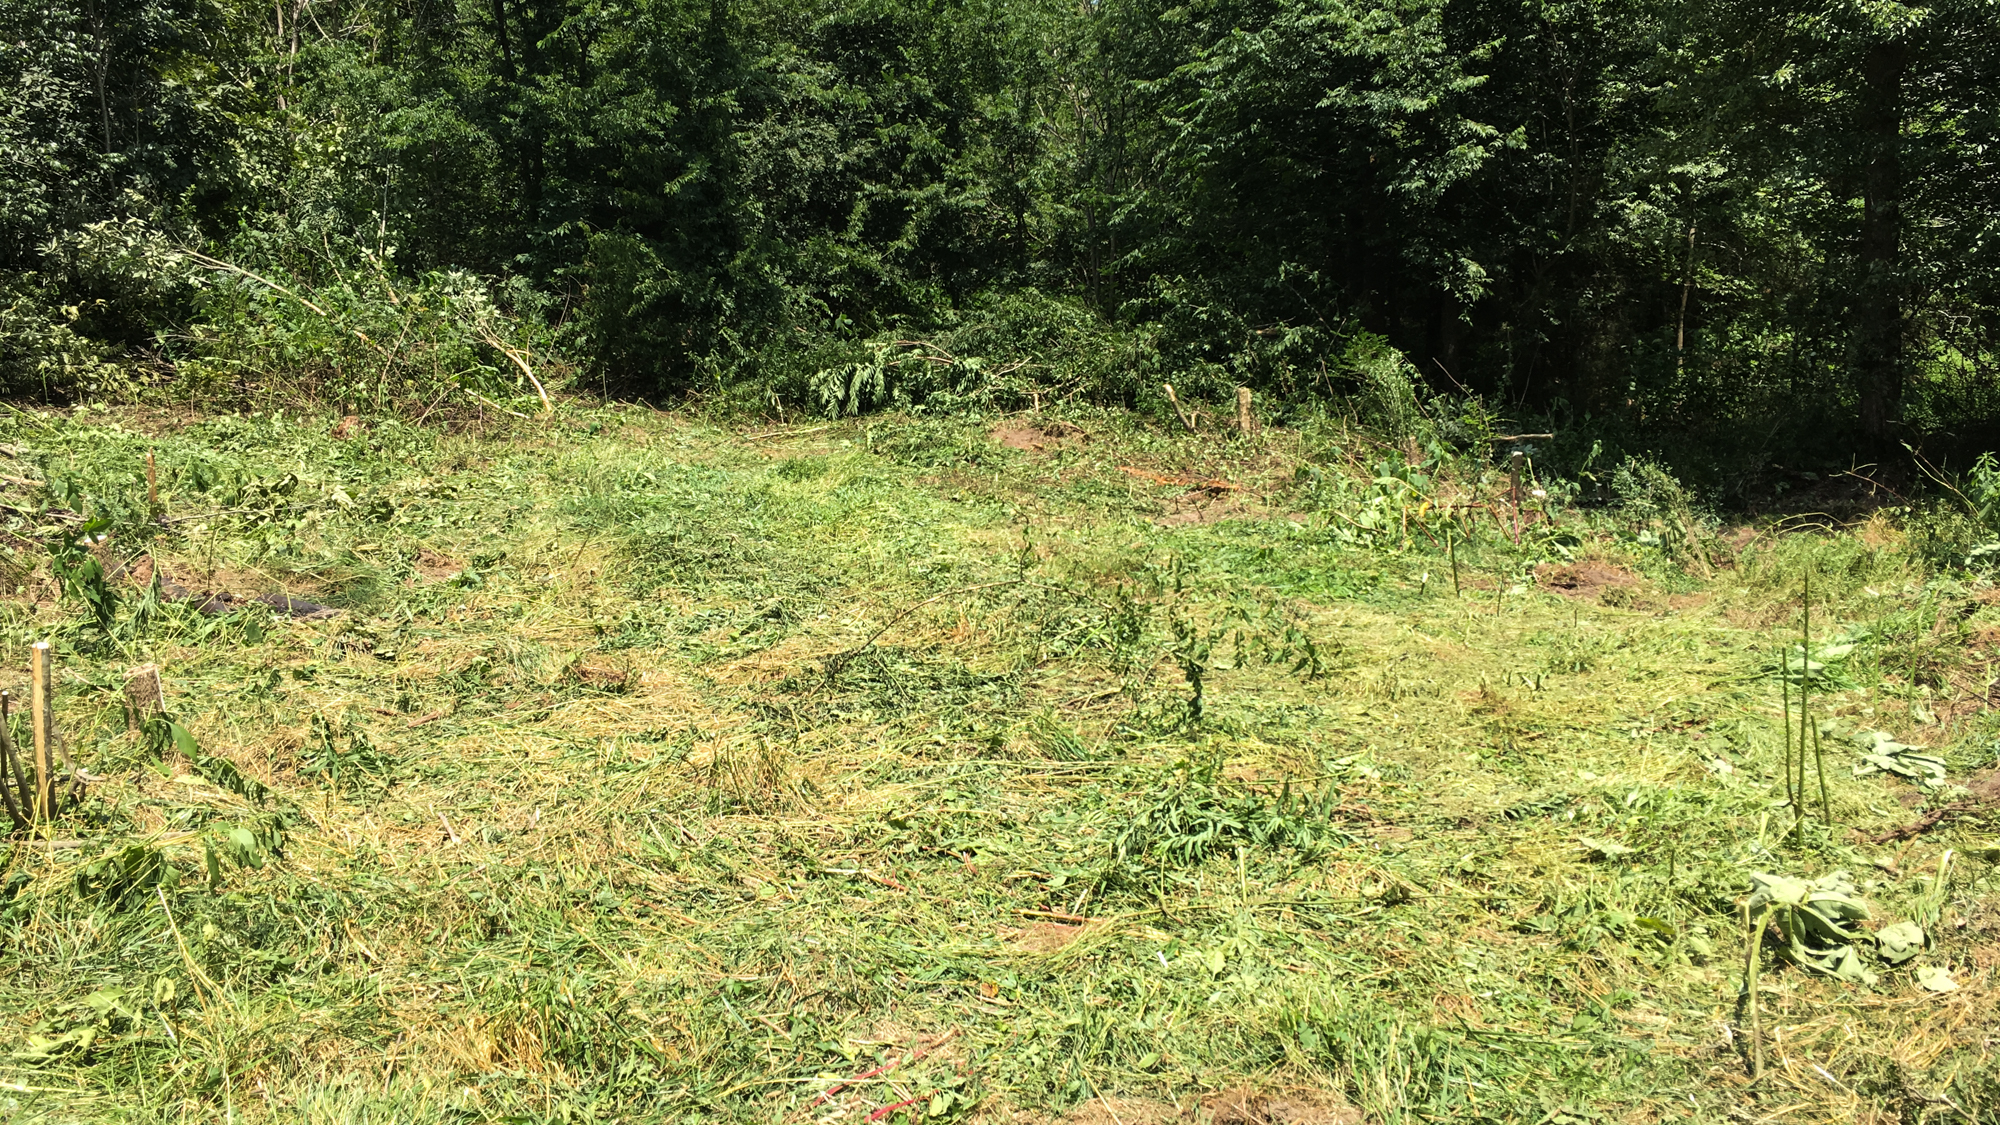 A new food plot opening